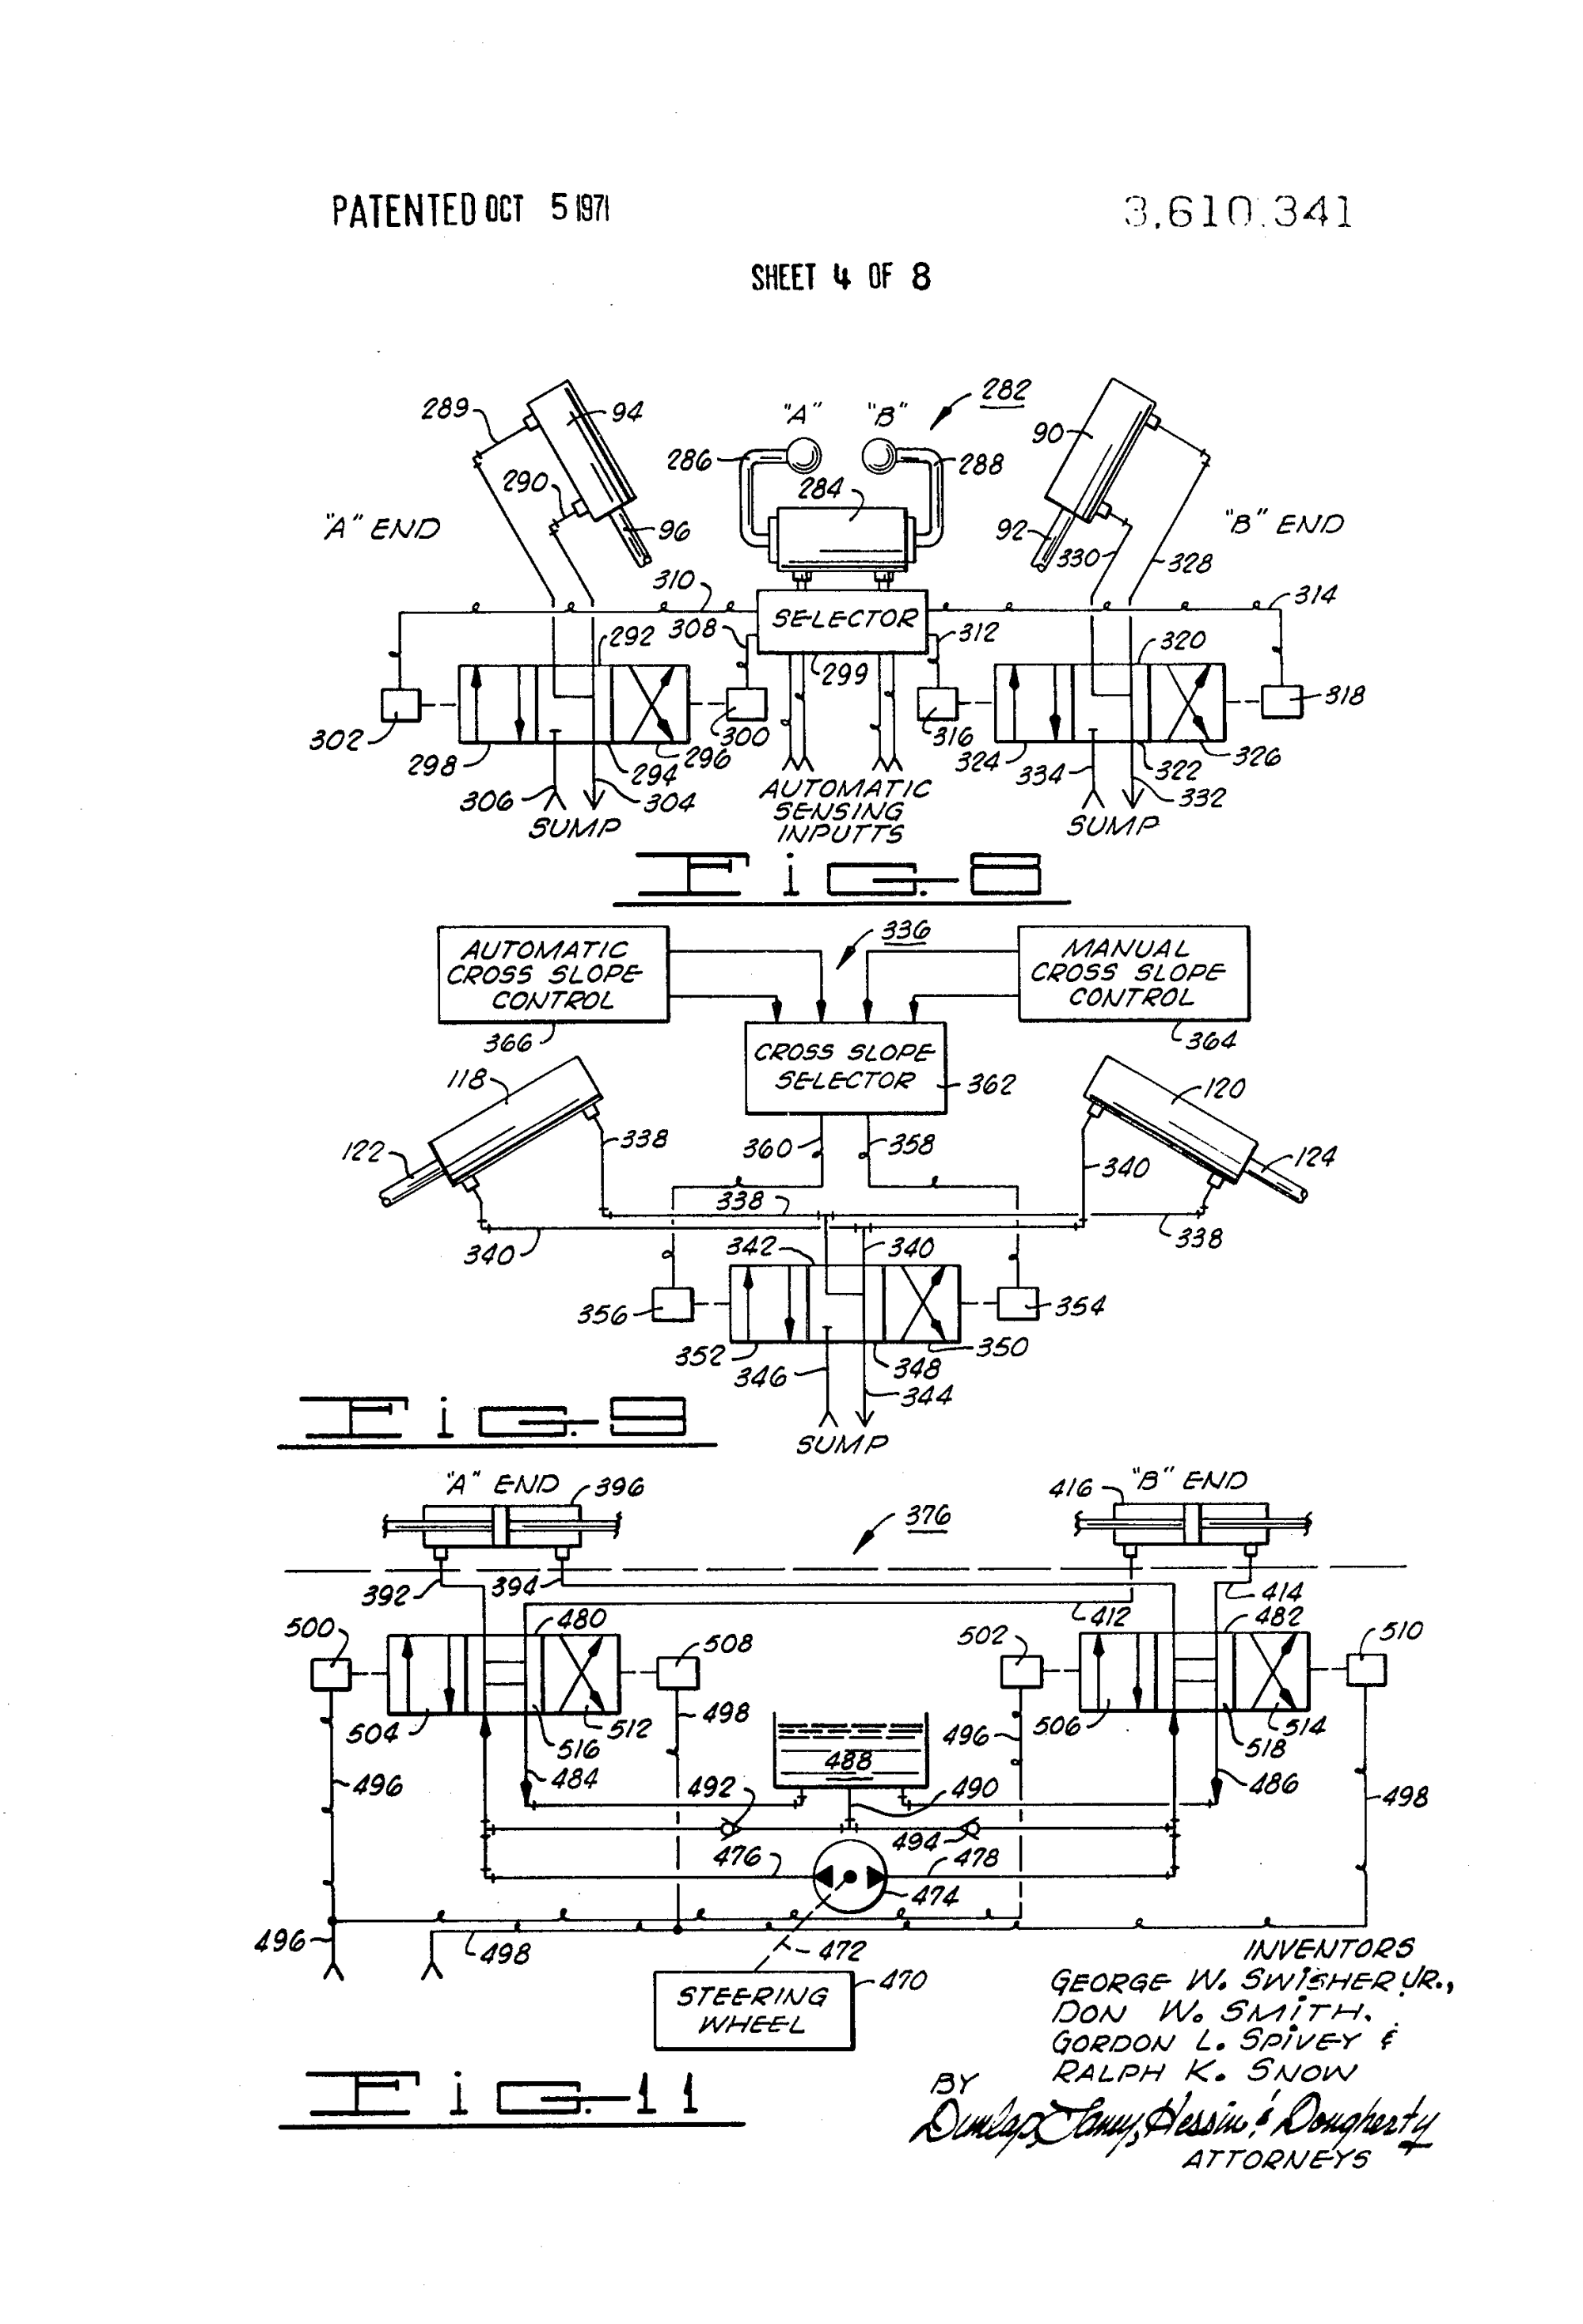 hight resolution of ih 584 wiring diagram best wiring diagramih 584 wiring diagram wiring diagram forward ih 584 wiring